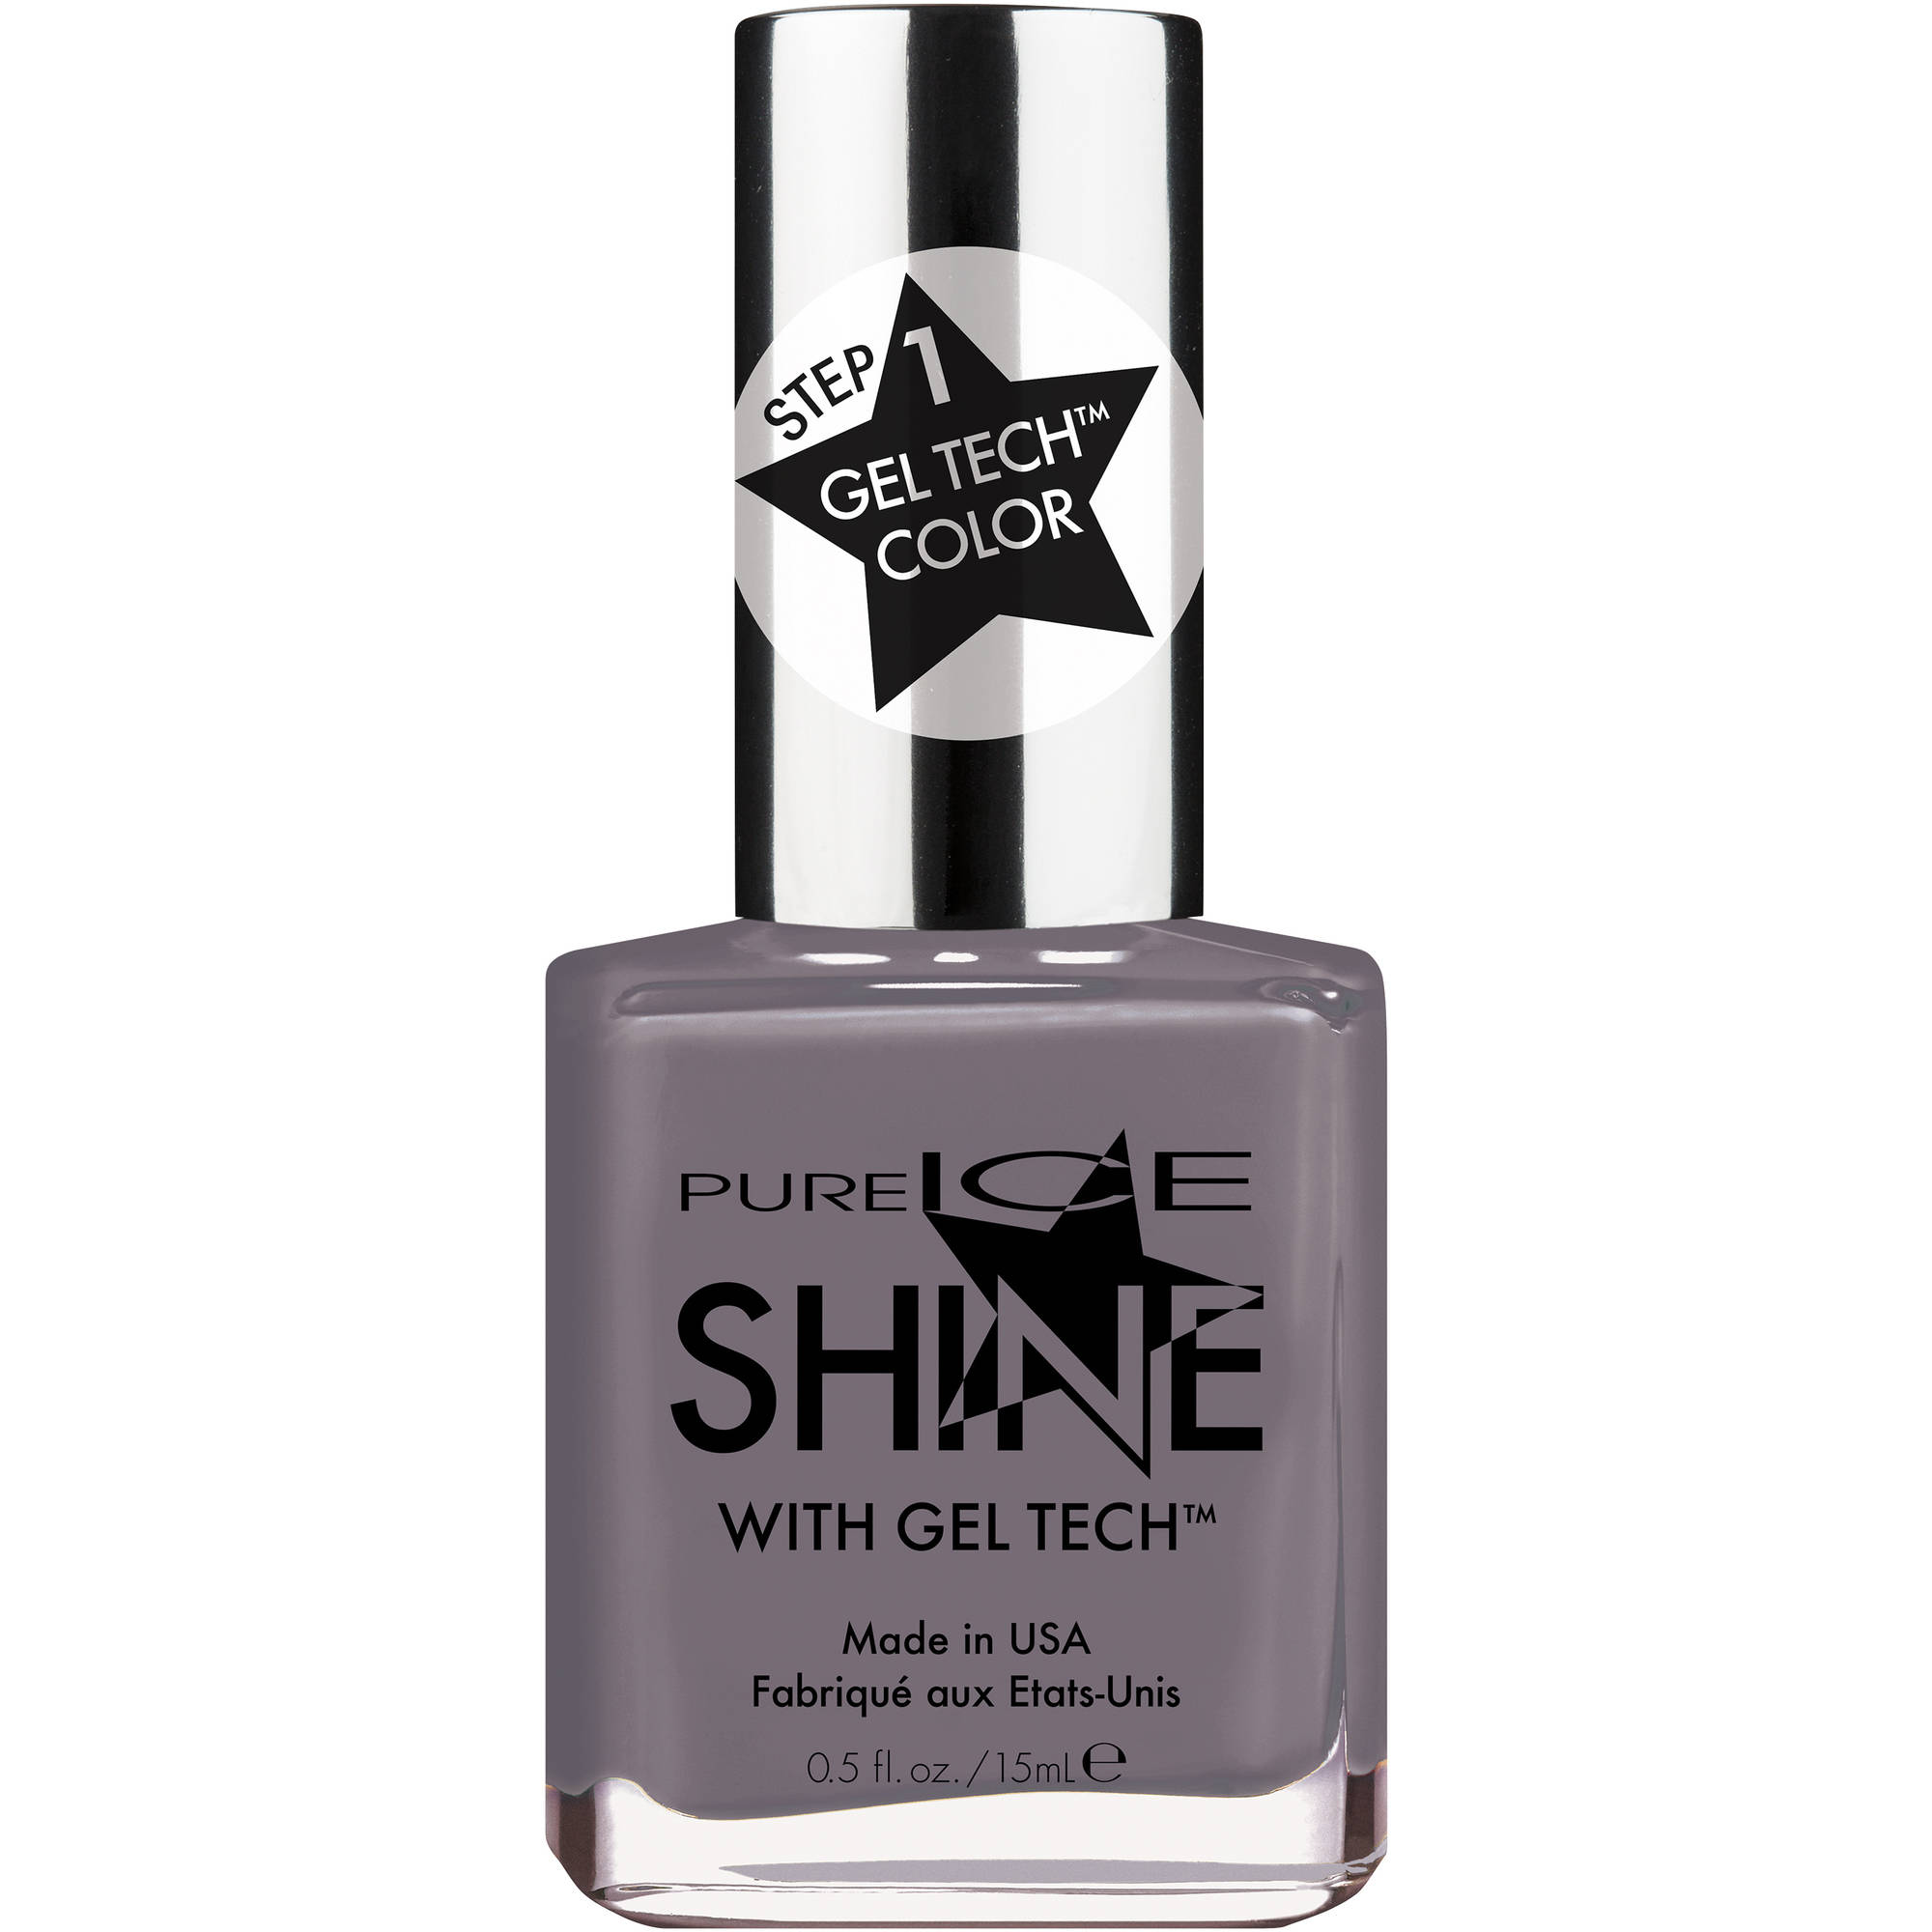 Pure Ice Shine with Gel Tech Nail Polish, Shining Knight, 0.5 fl oz